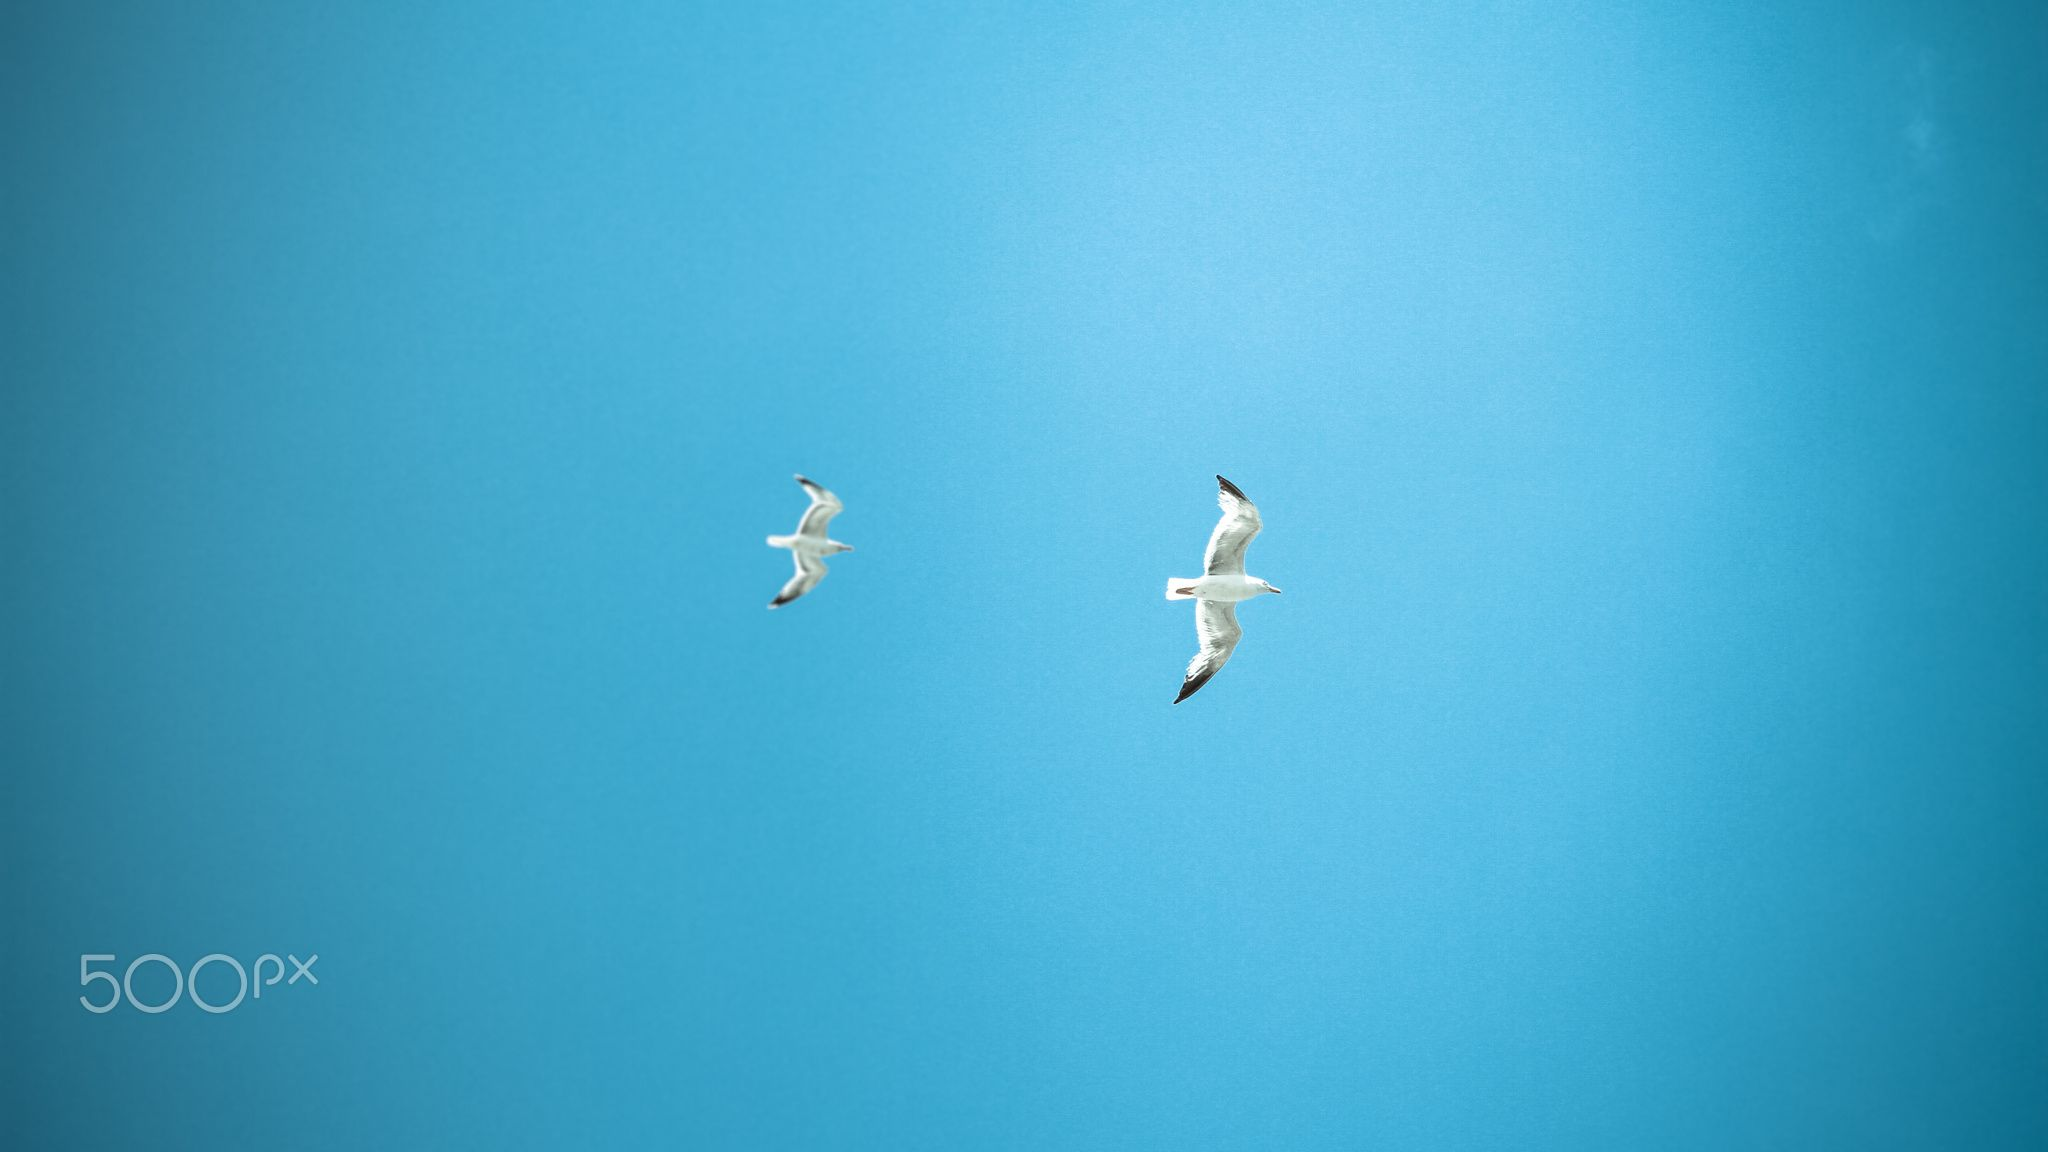 Birds Flying In The Sky - You'll be free at the moment you wish to be.